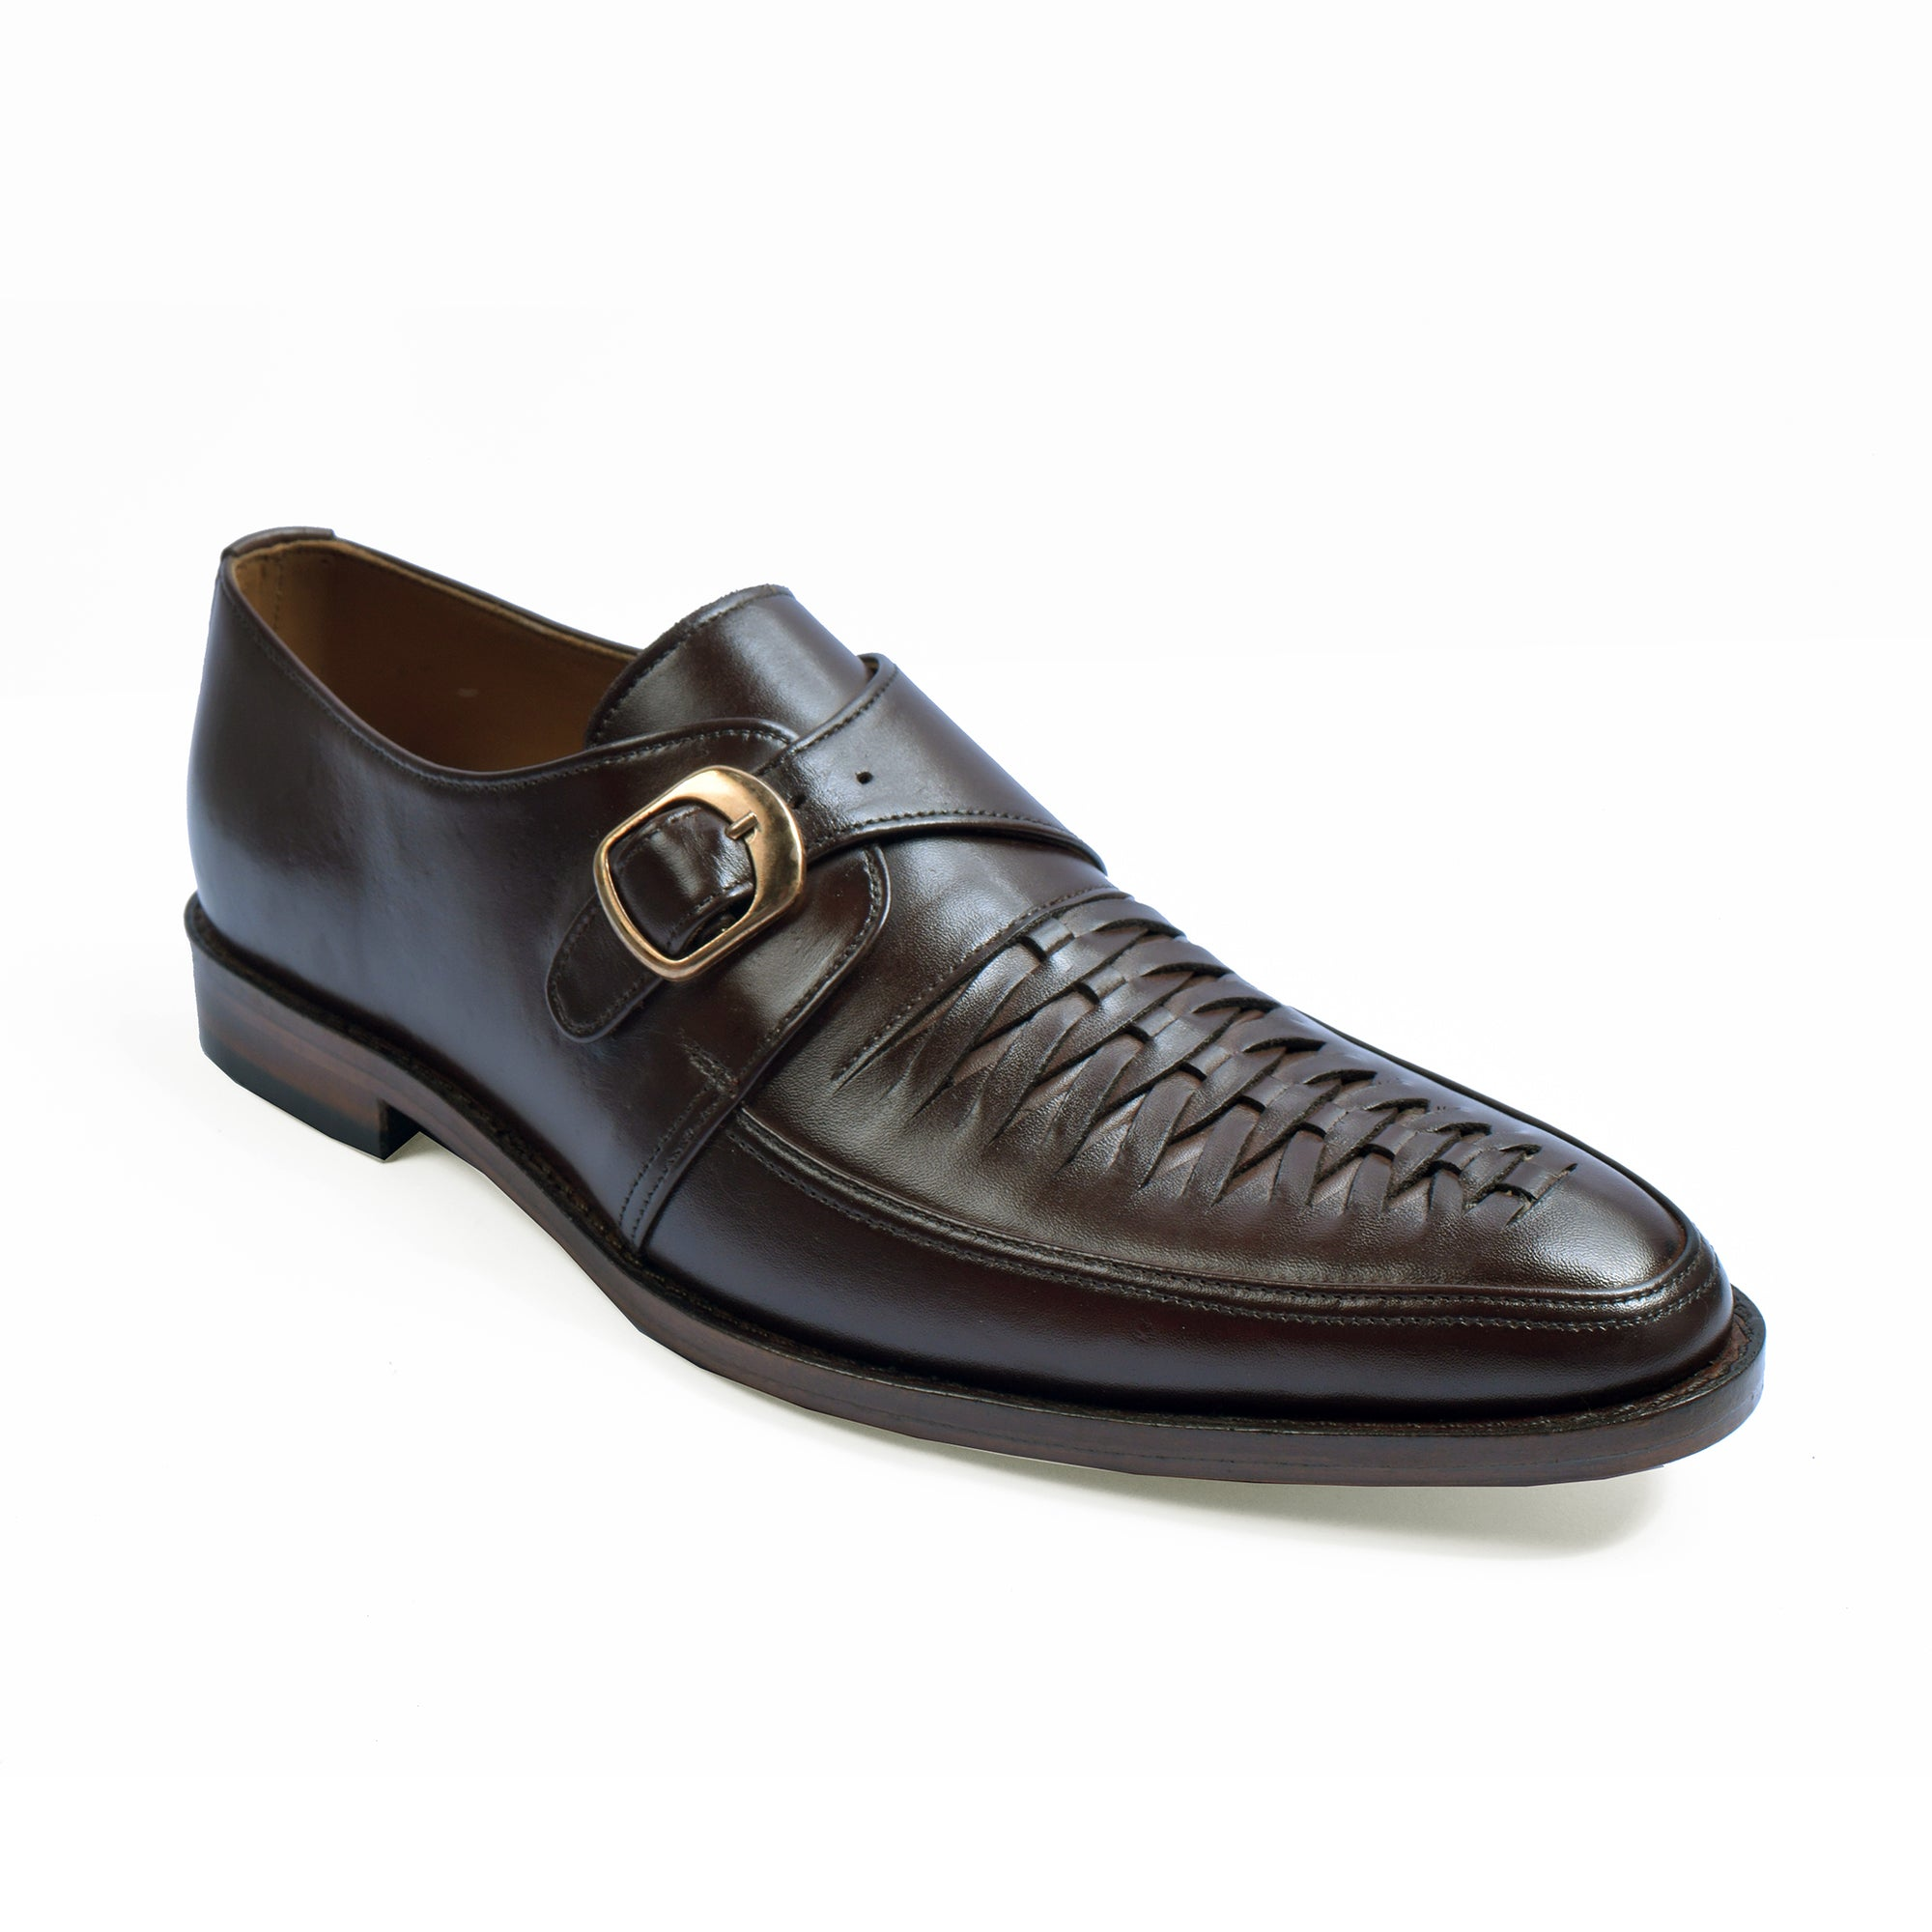 Moccinoo MENS LUXURY SHOES FINEST LEATHER-NA9289